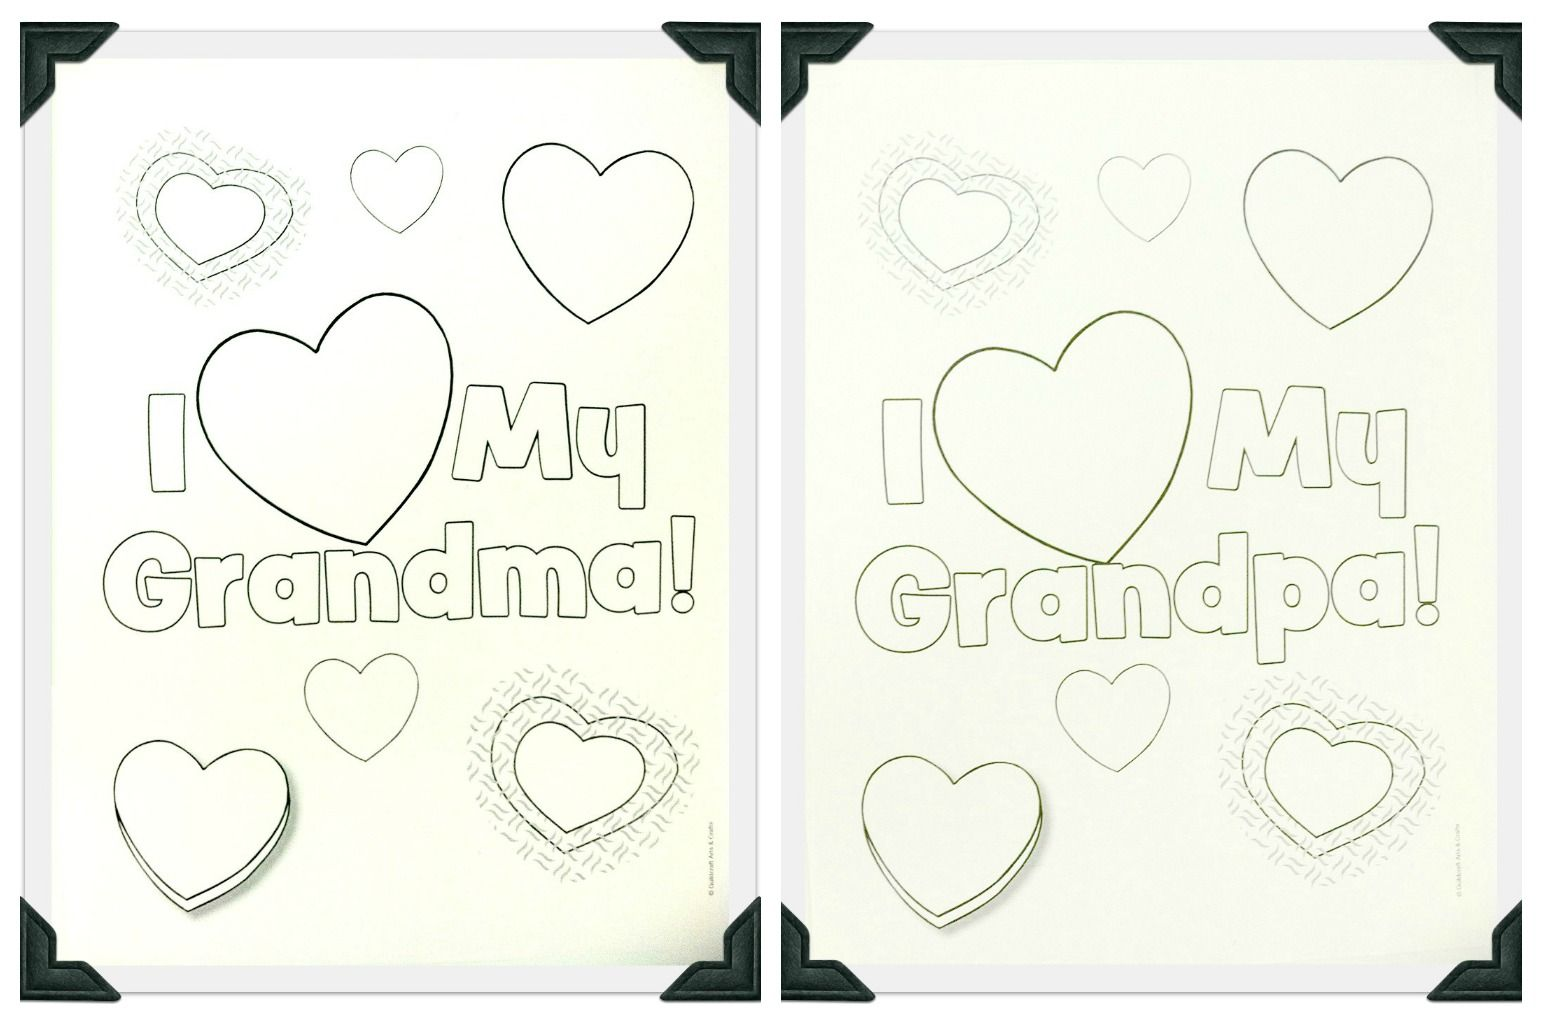 Coloring Pages Grandparents Day Printable Coloring Pages 1000 images about grandparents day on pinterest crafts september and coloring pages